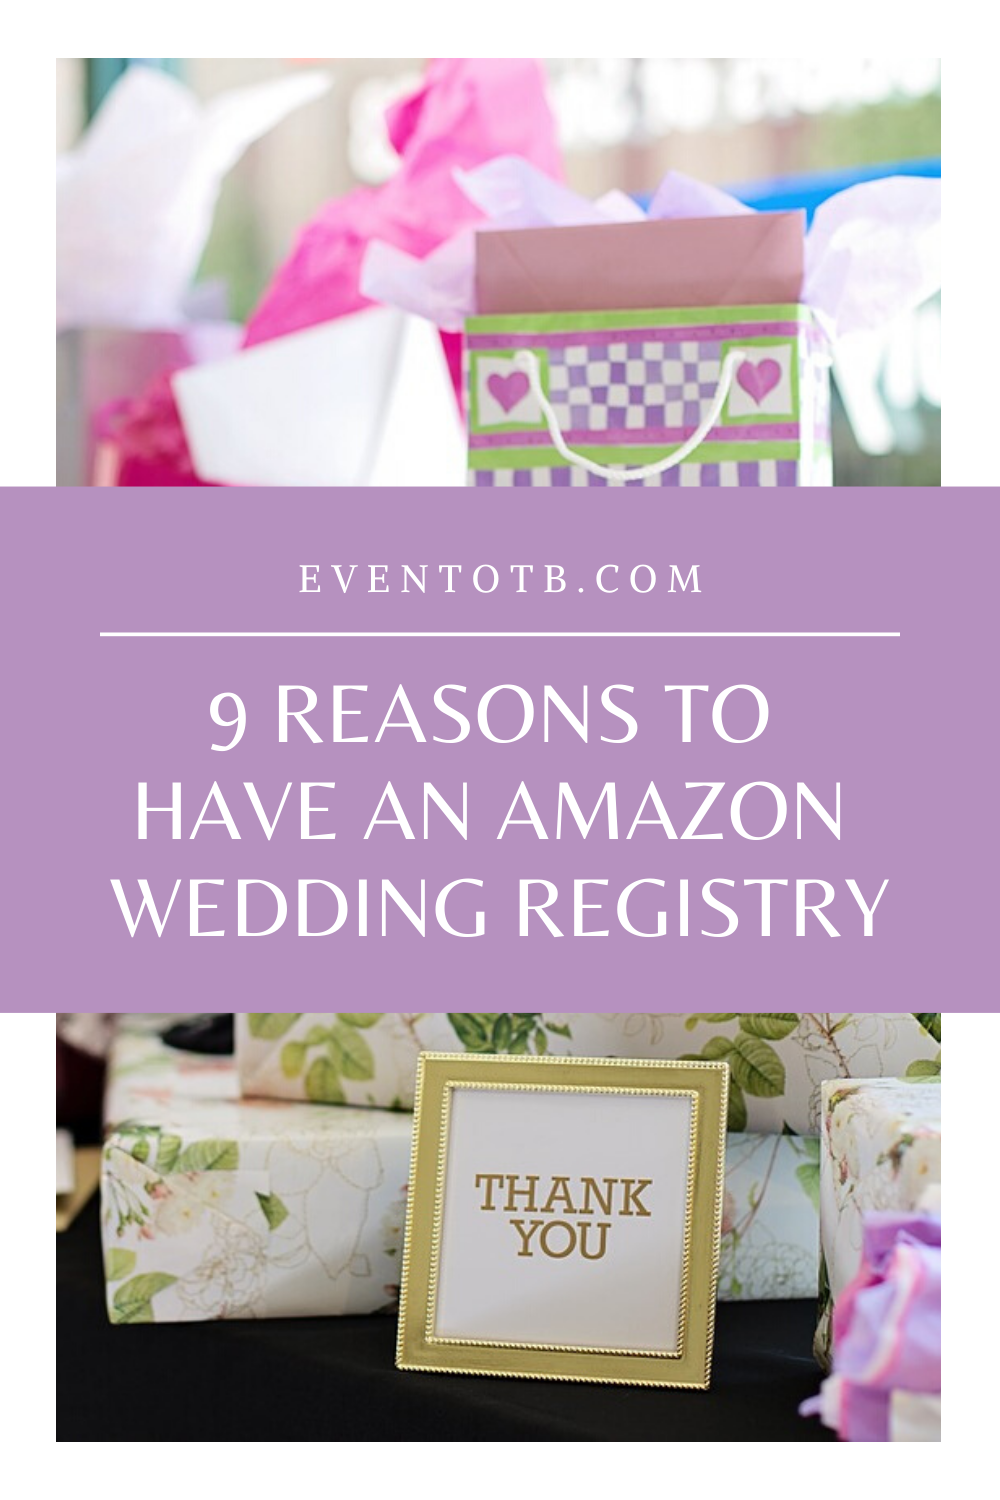 9 Reasons to Have an Amazon Wedding Registry in 2020